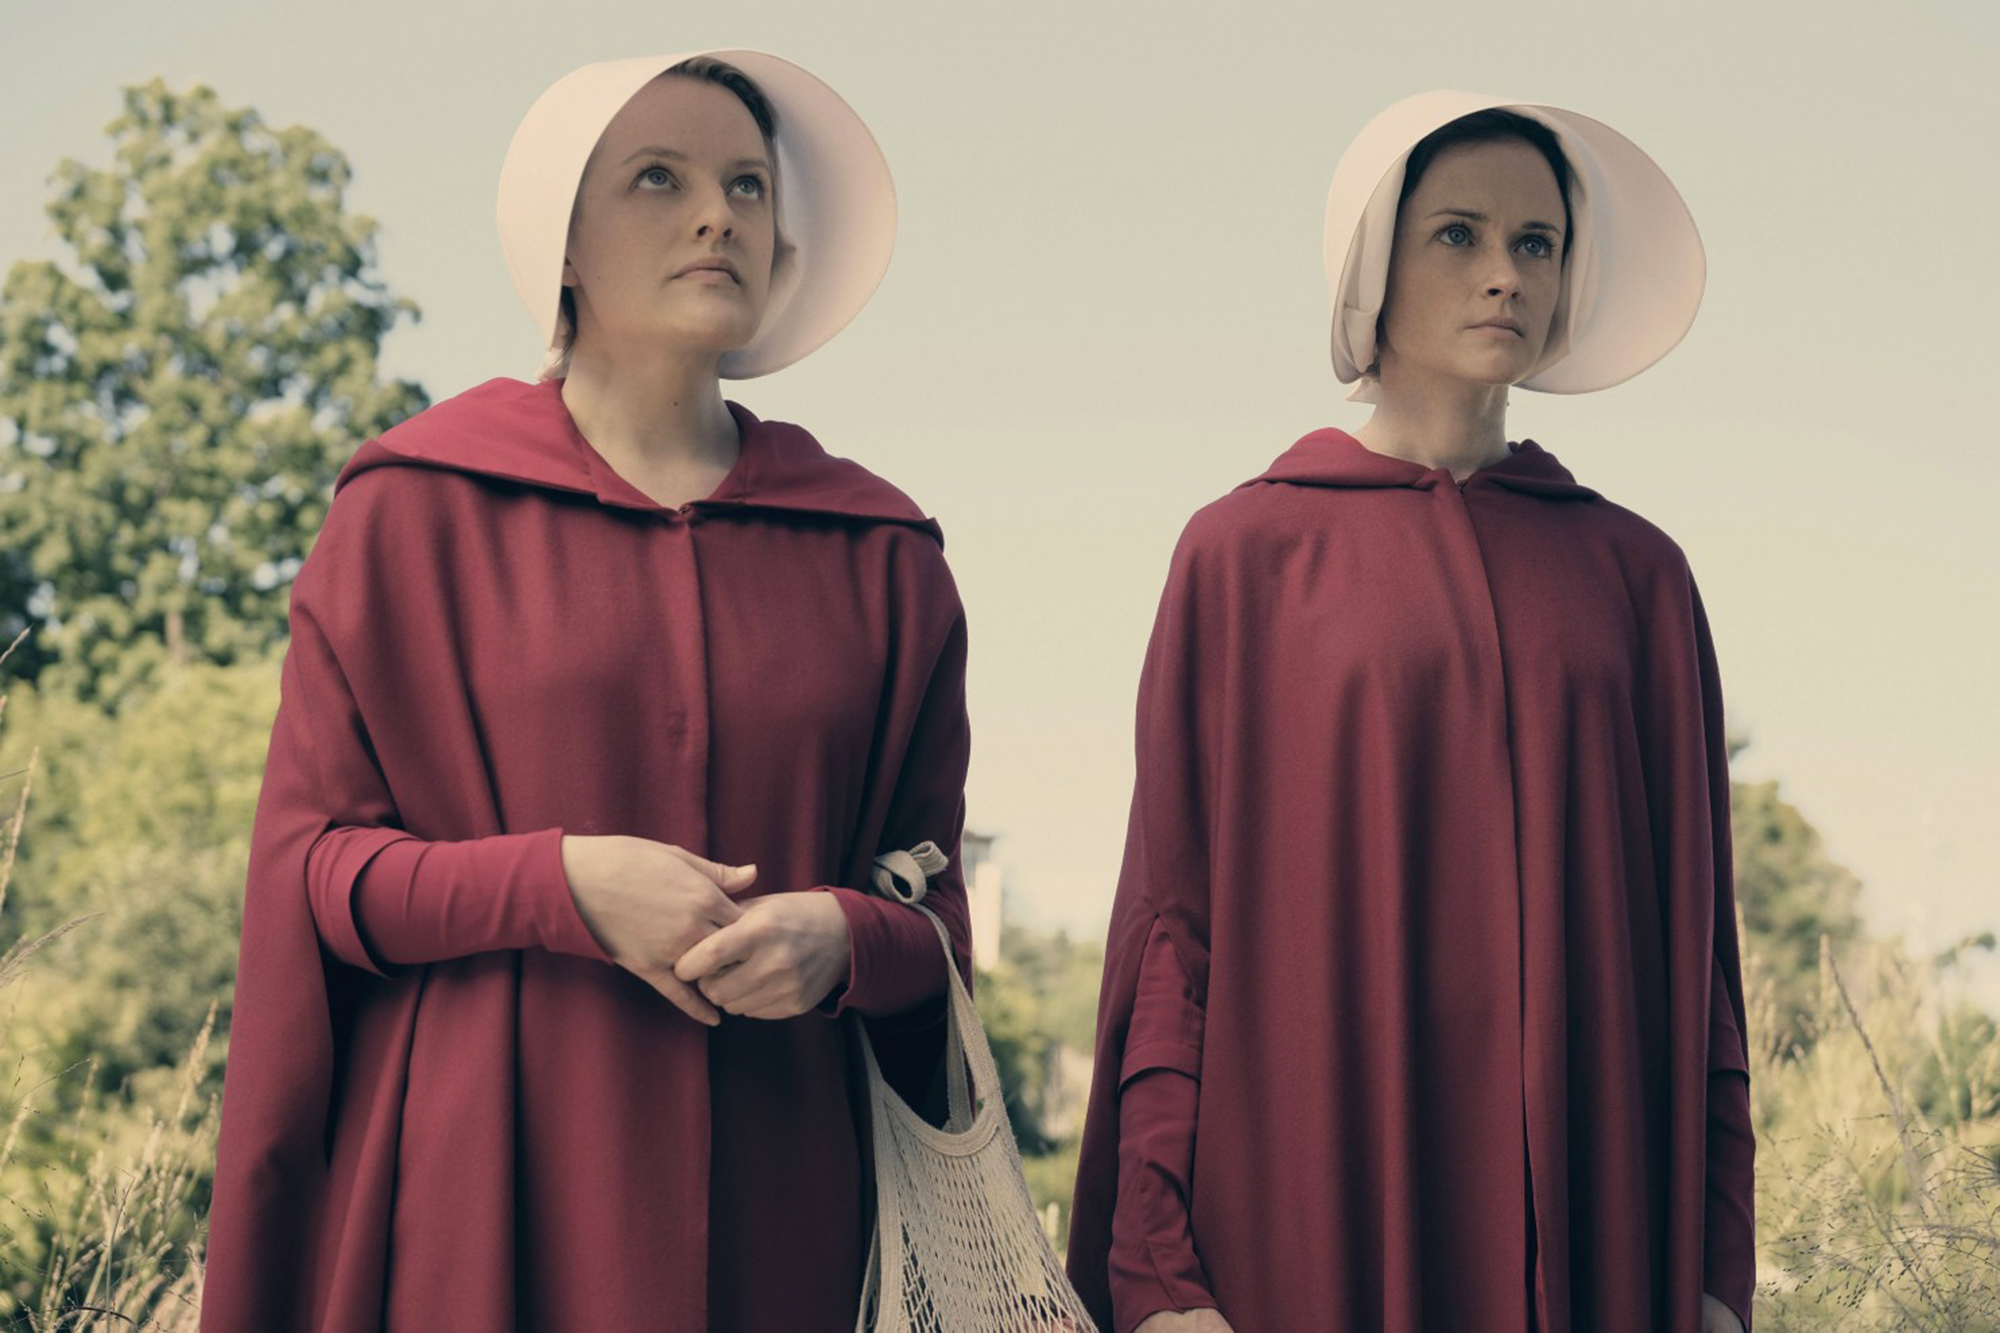 Elisabeth Moss and Alexis Bledel in The Handmaid's Tale.